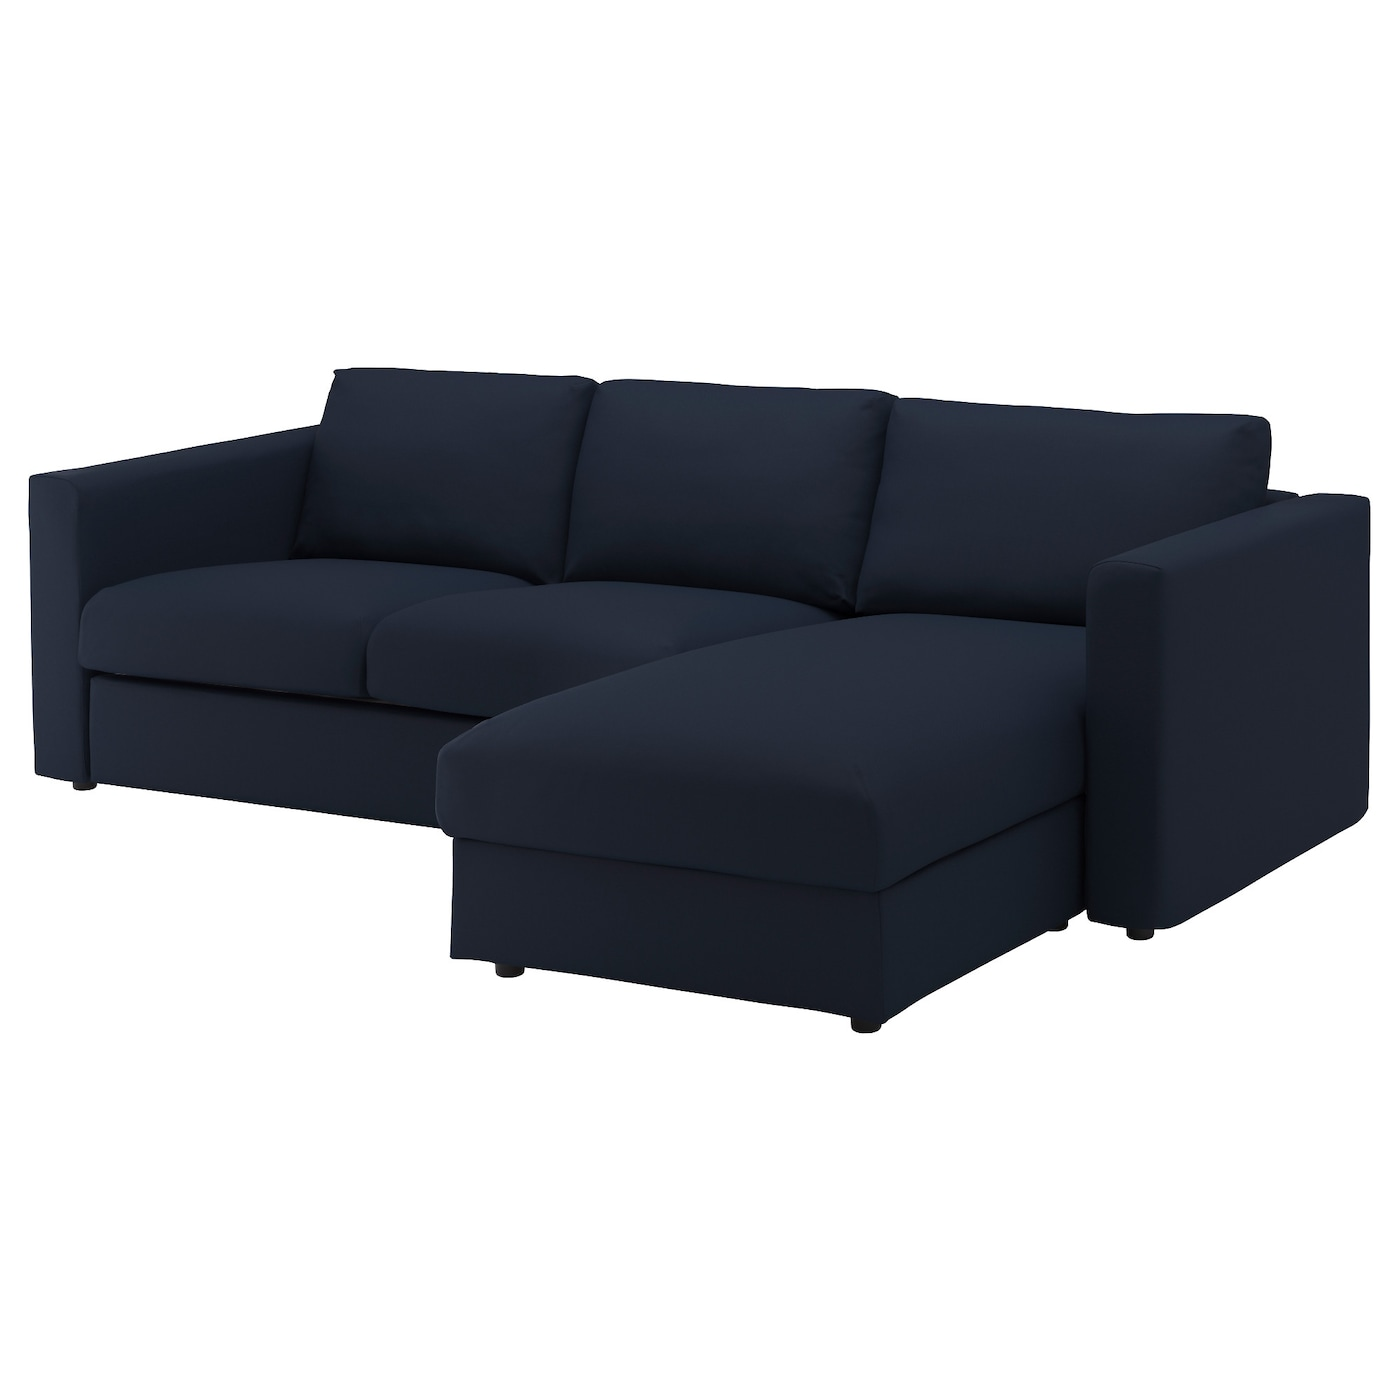 Vimle 3 seat sofa with chaise longue gr sbo black blue ikea for Chaise longue ikea